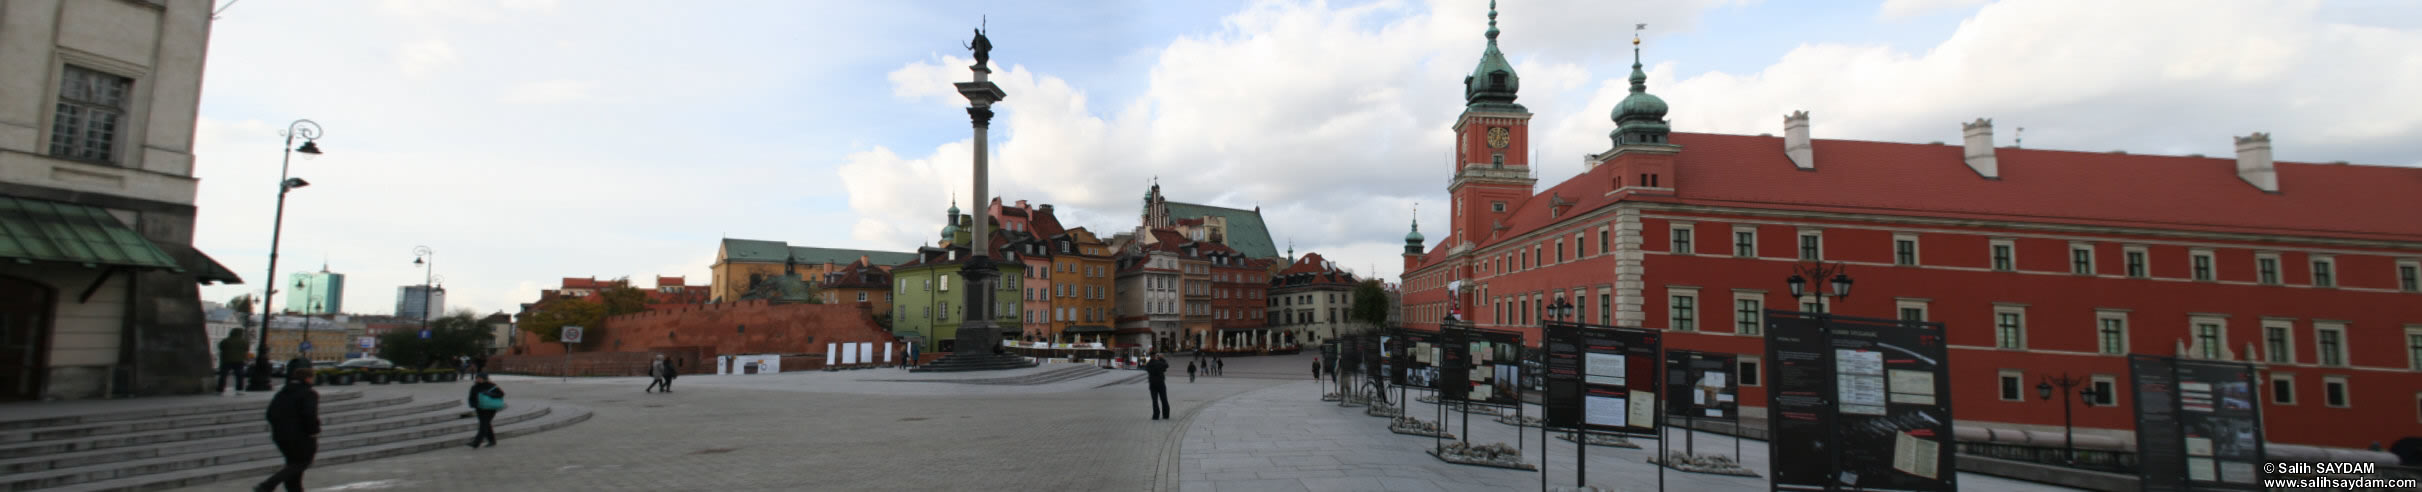 Old Town Panorama 09 (Castle Square, Warsaw, Poland)